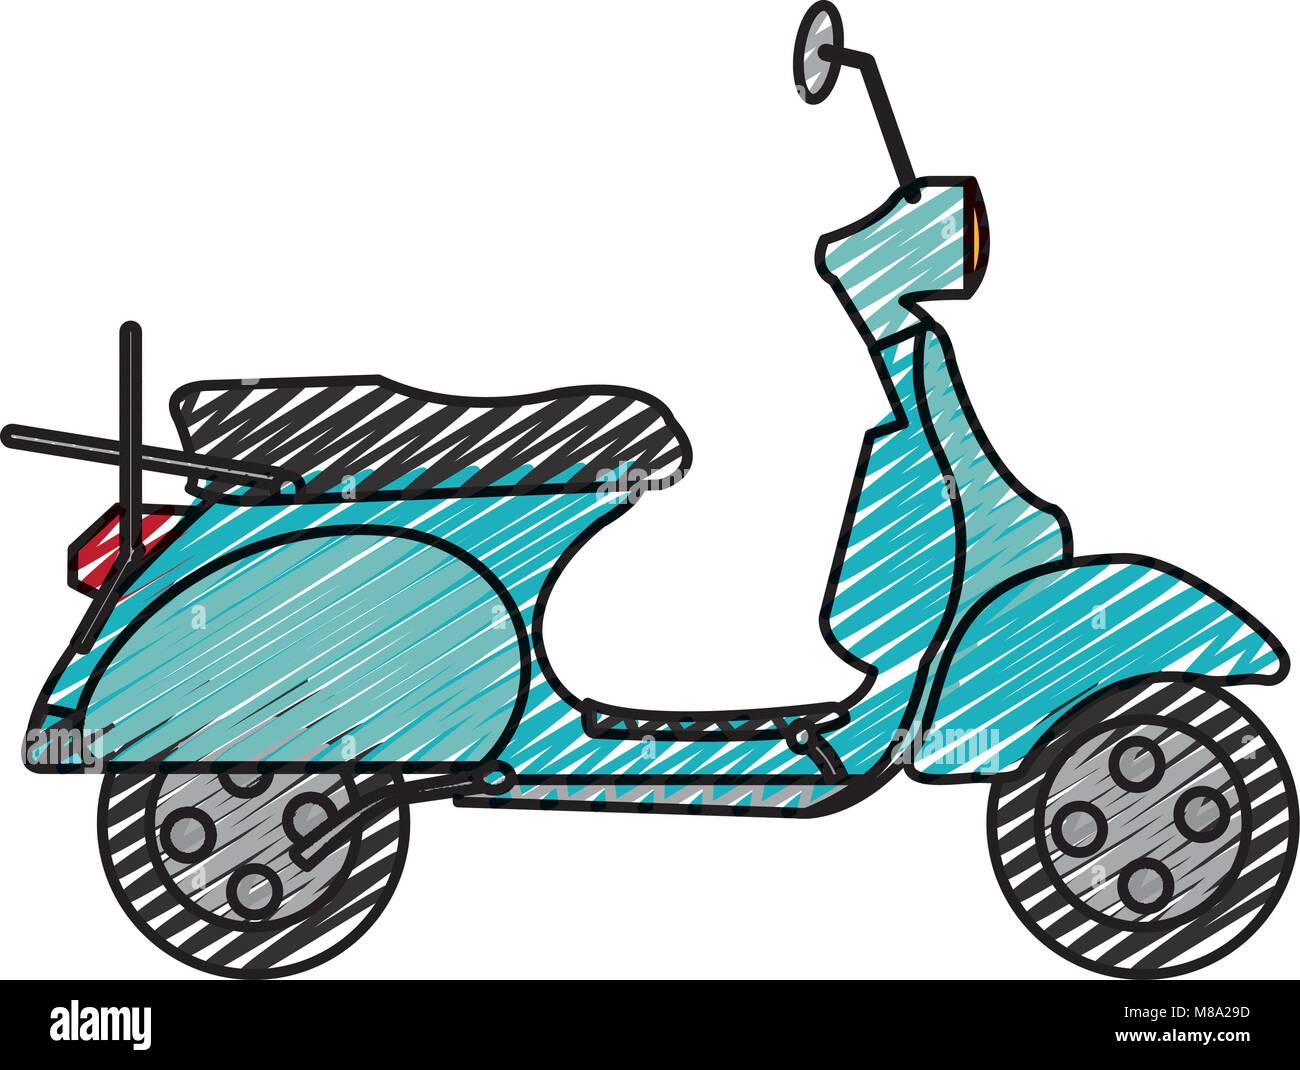 doodle motocycle transportation travel with mirror and wheels - Stock Vector